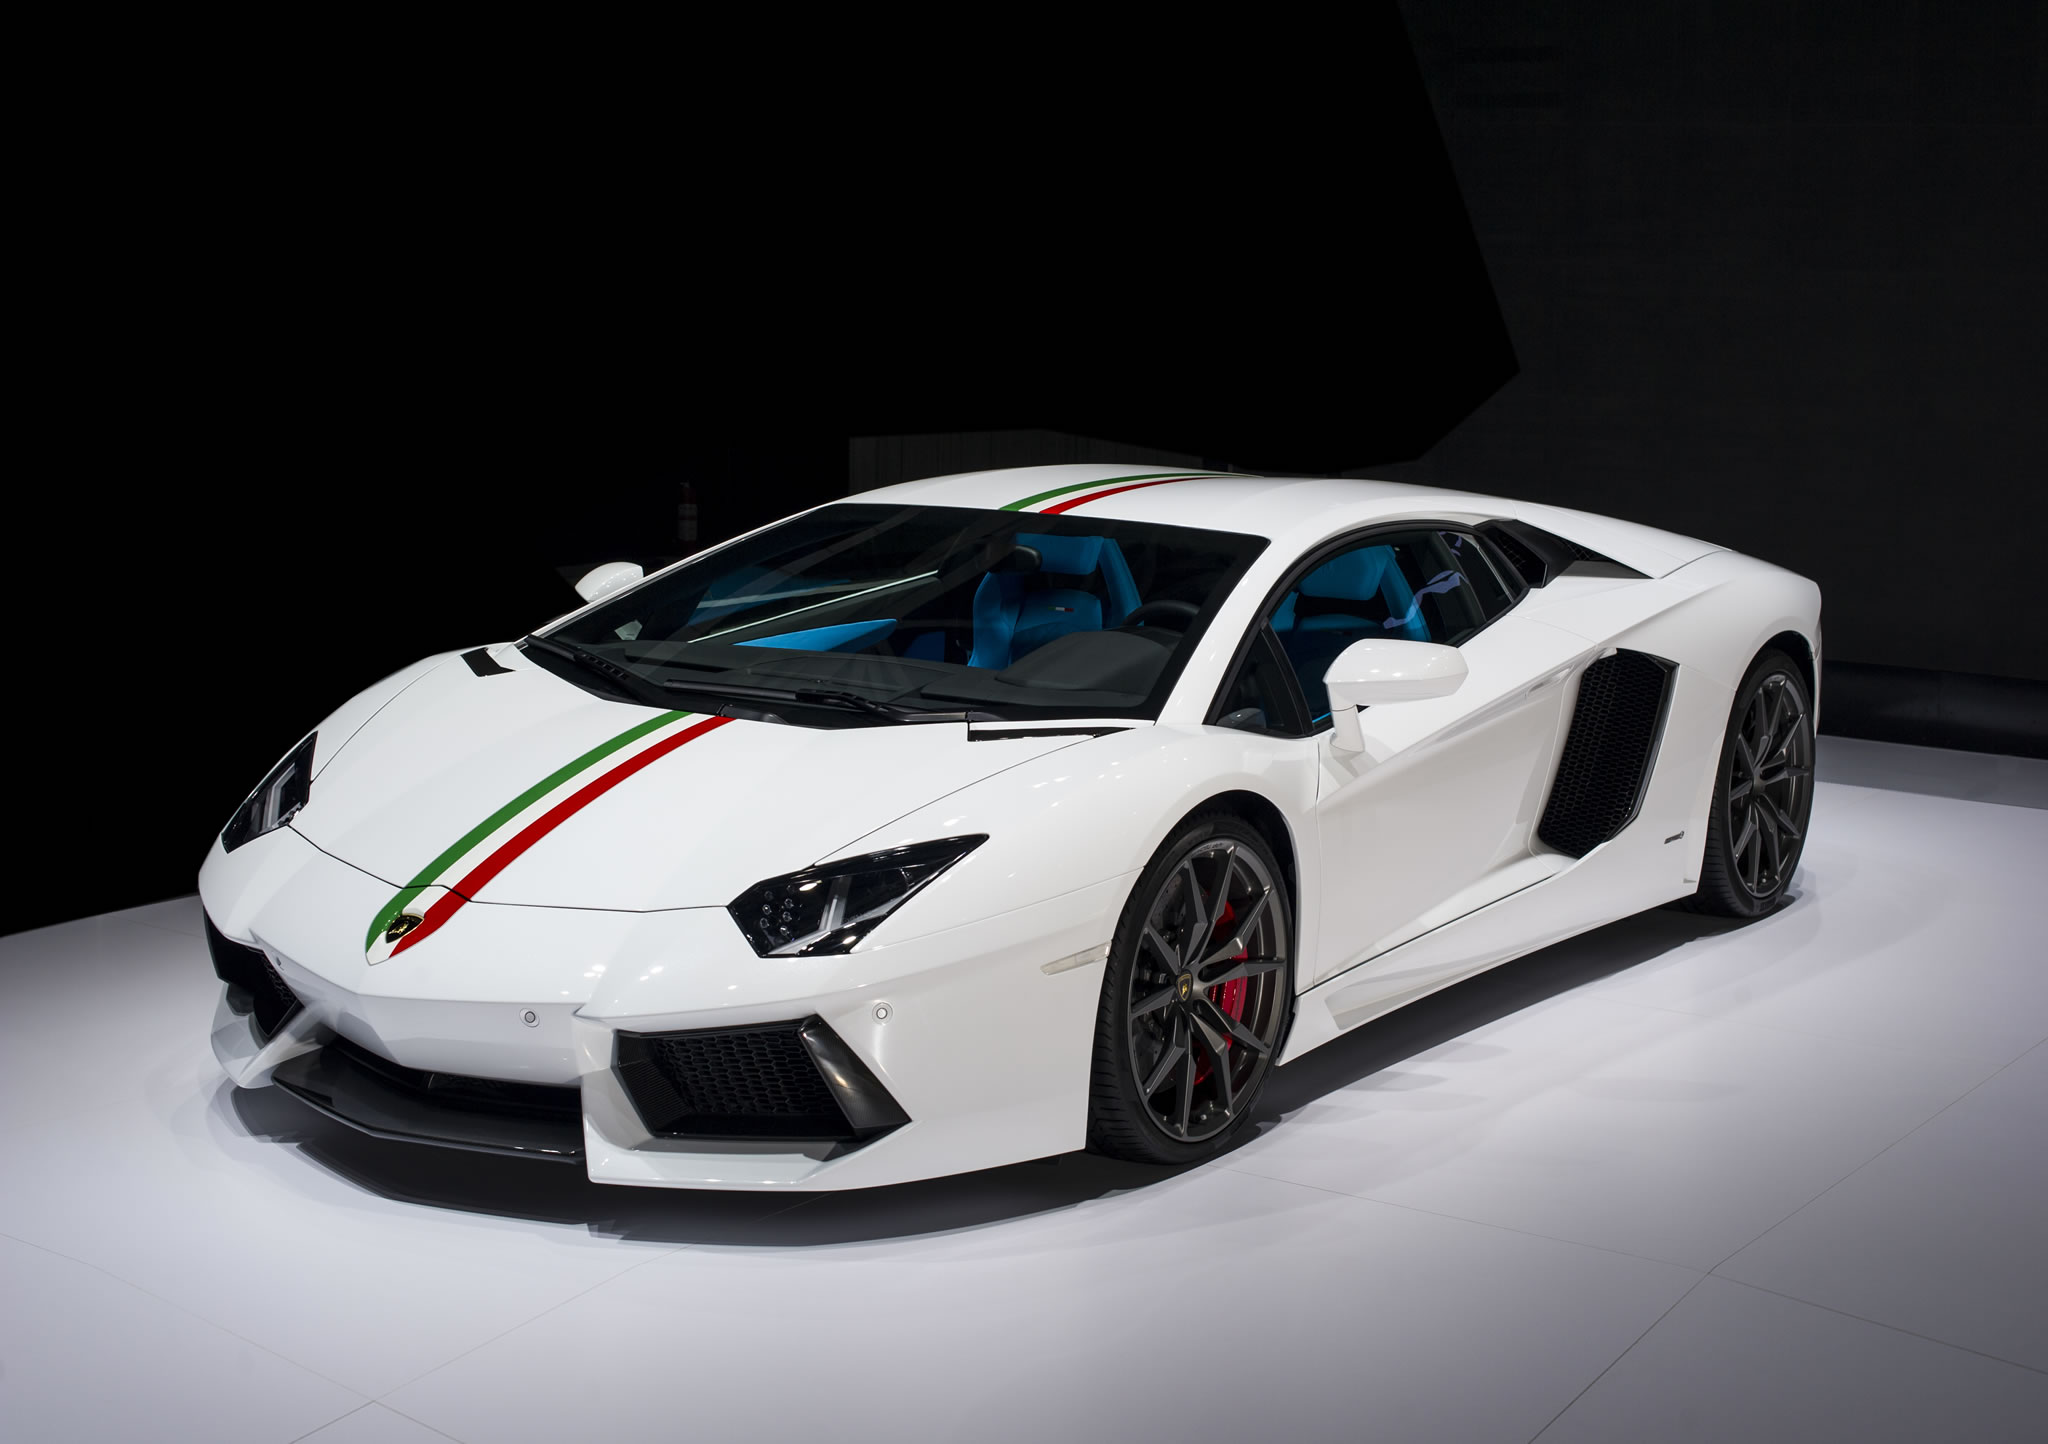 2014 Lamborghini Aventador LP 7004 Nazionale Photos Specs and